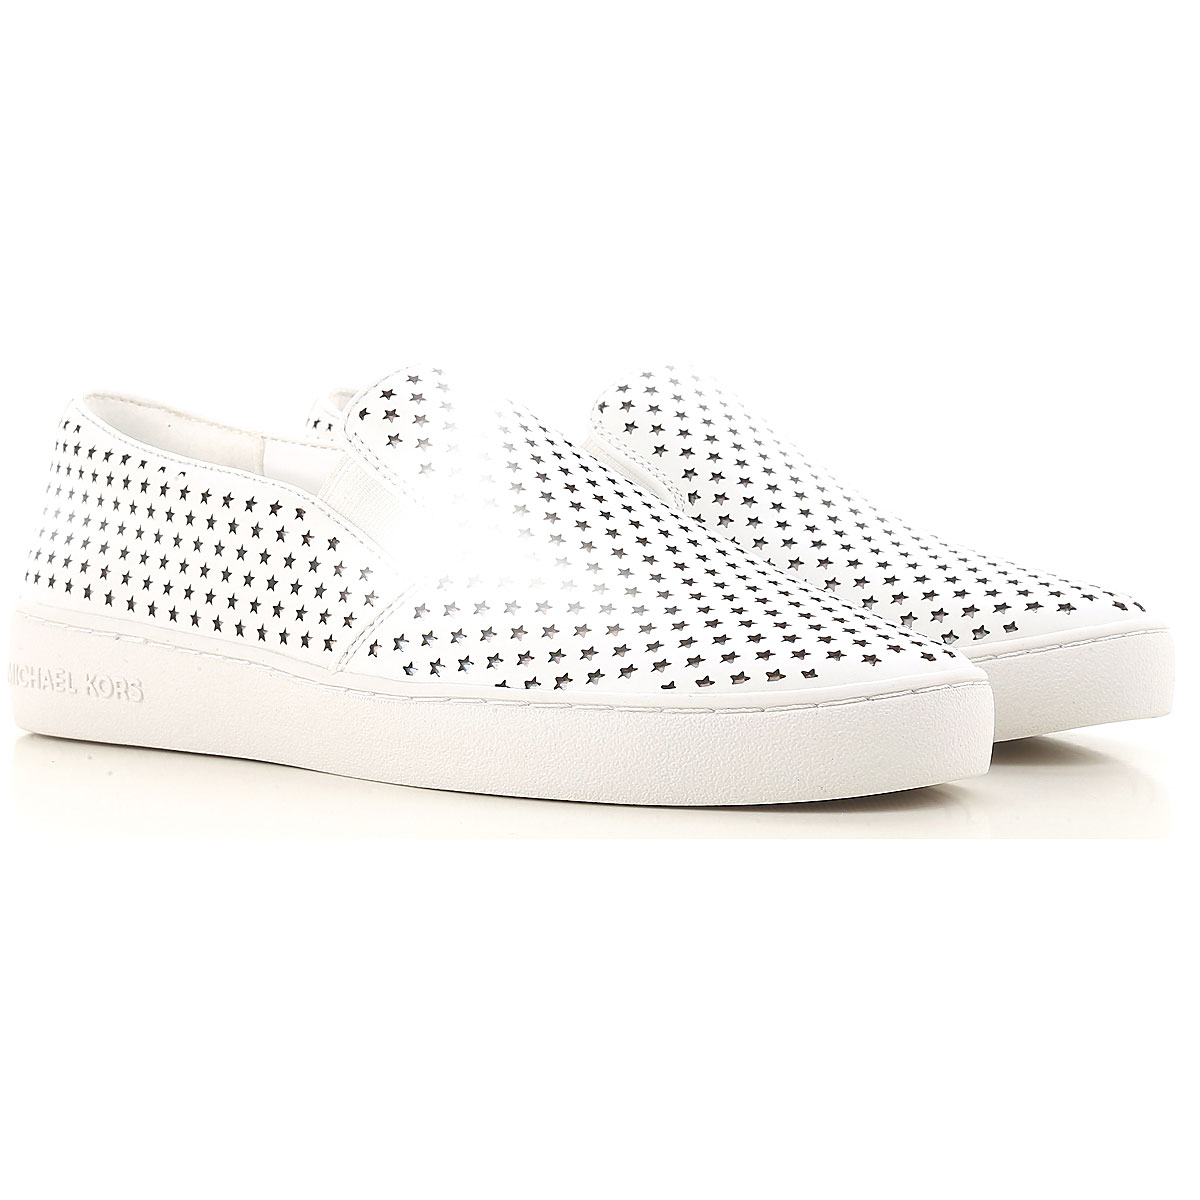 Michael Kors Slip on Sneakers for Women On Sale in Outlet, White, Leather, 2019, 4 4.5